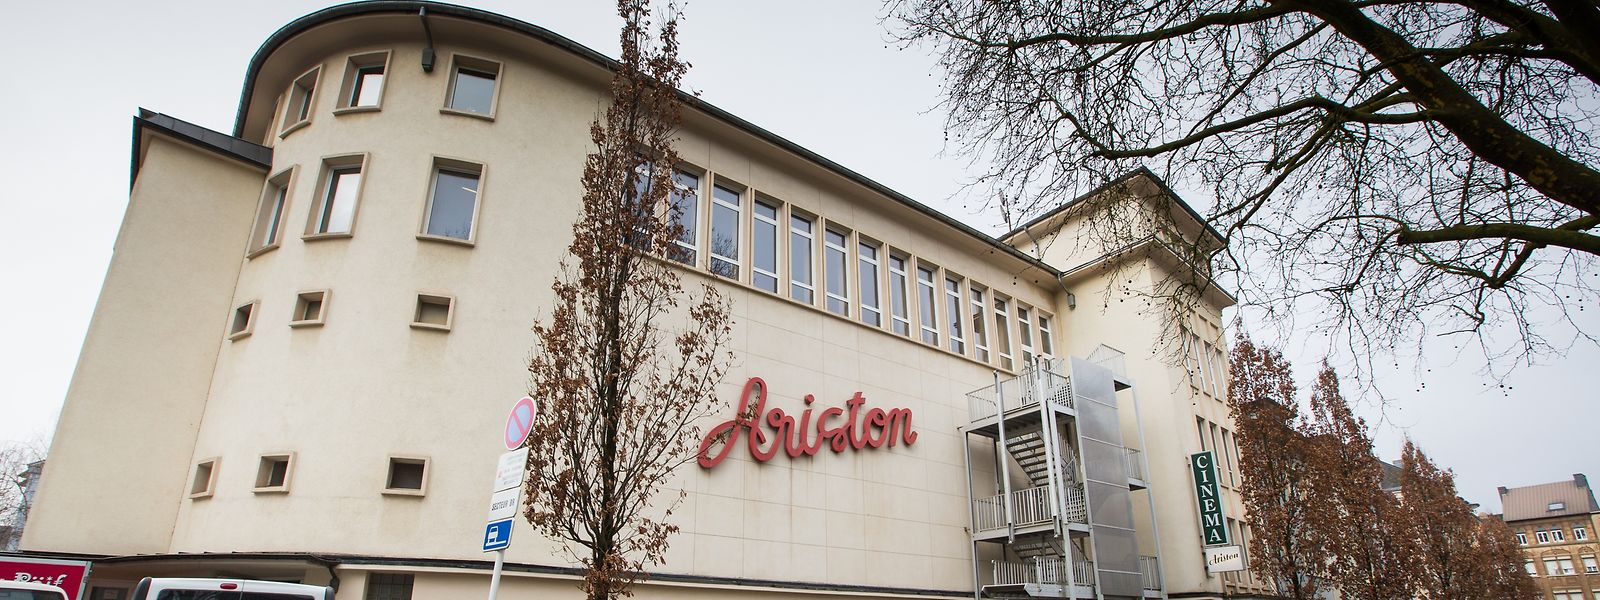 Visite Ariston, Foto Lex Kleren